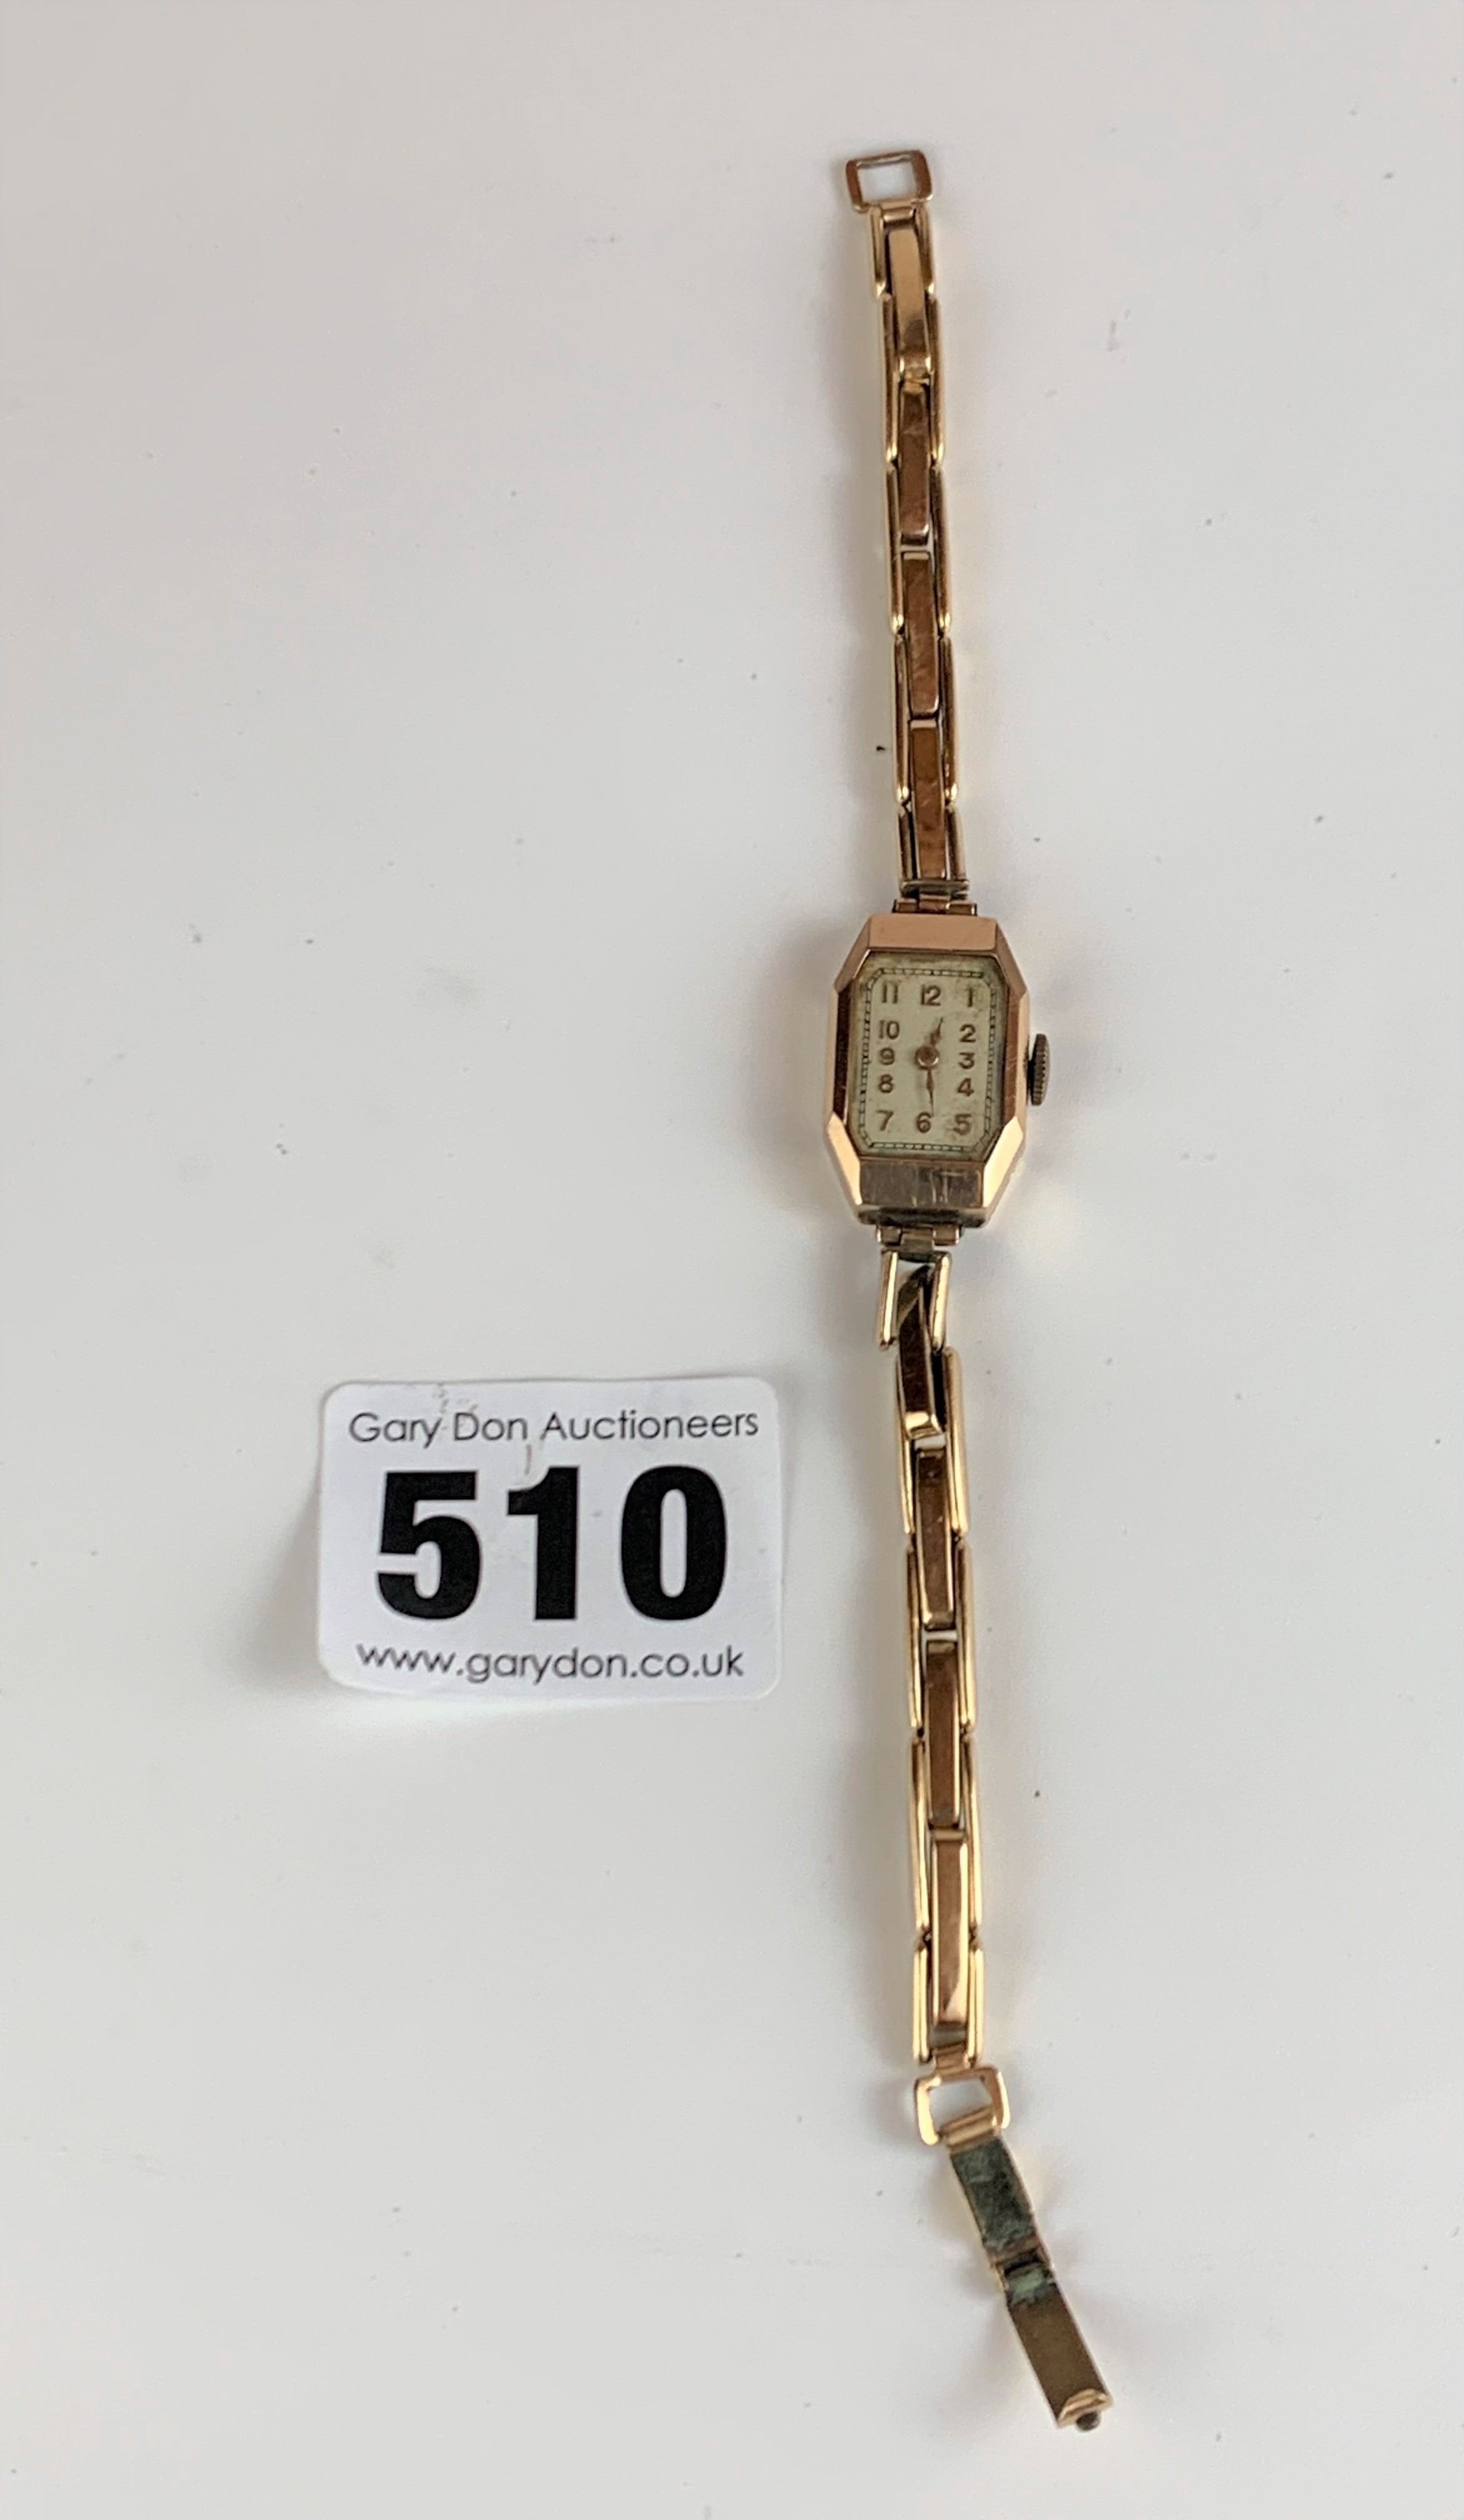 9k gold ladies watch with plated strap, total w: 12 gms, working - Image 3 of 5